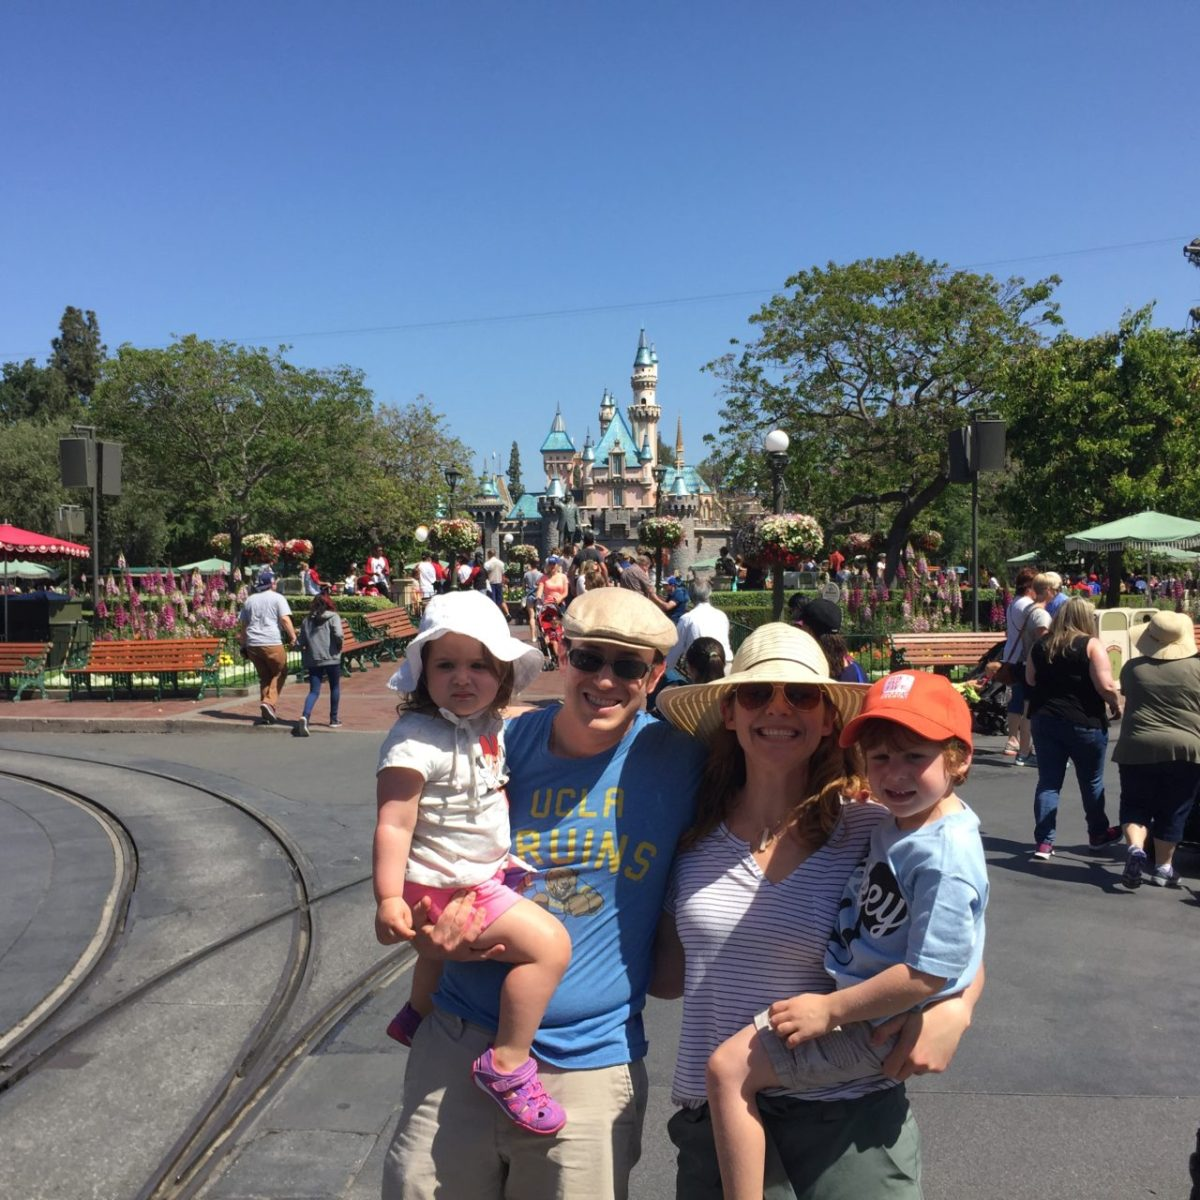 Disneyland castle family picture - it was so hard to get the kids focused on a camera when we had just walked into such a visual feast, but I think we succeeded!